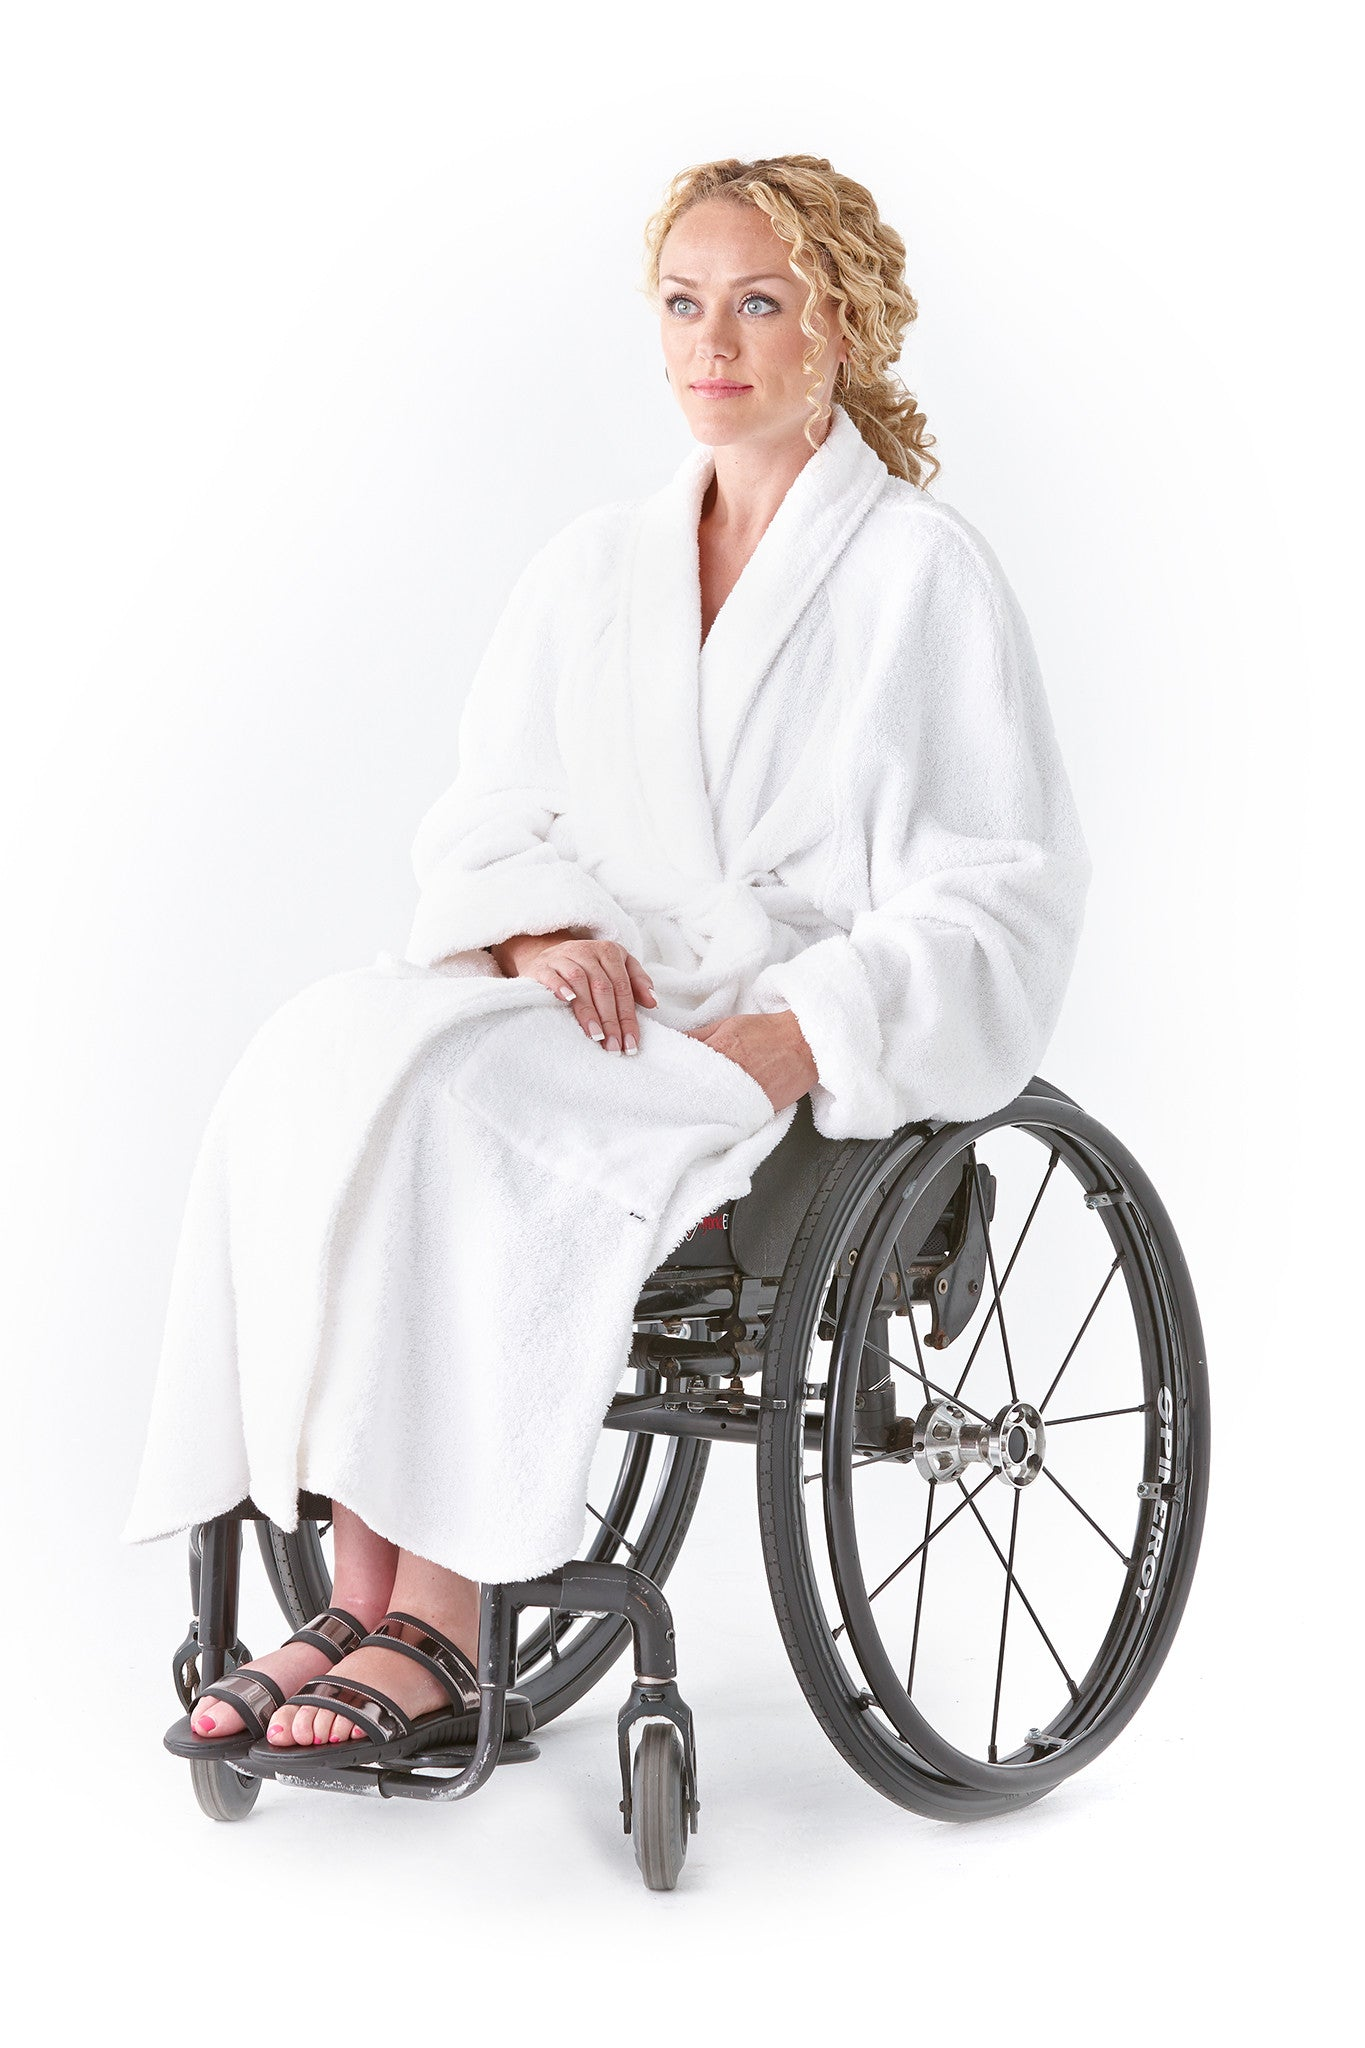 Bath robe for wheelchair users - The ultimate in adaptable clothing.